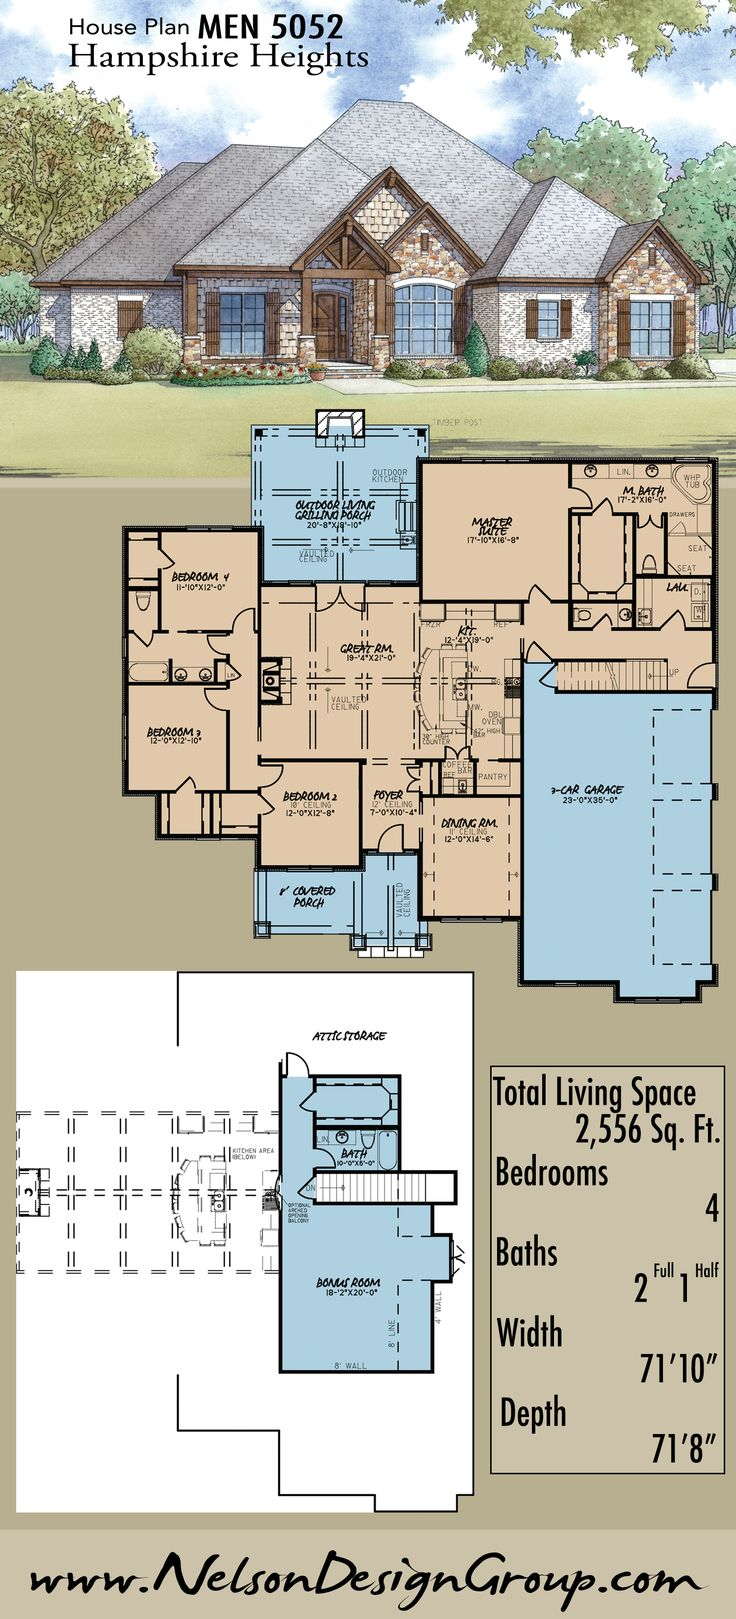 houses house homes home homeplan homeplans houseplan